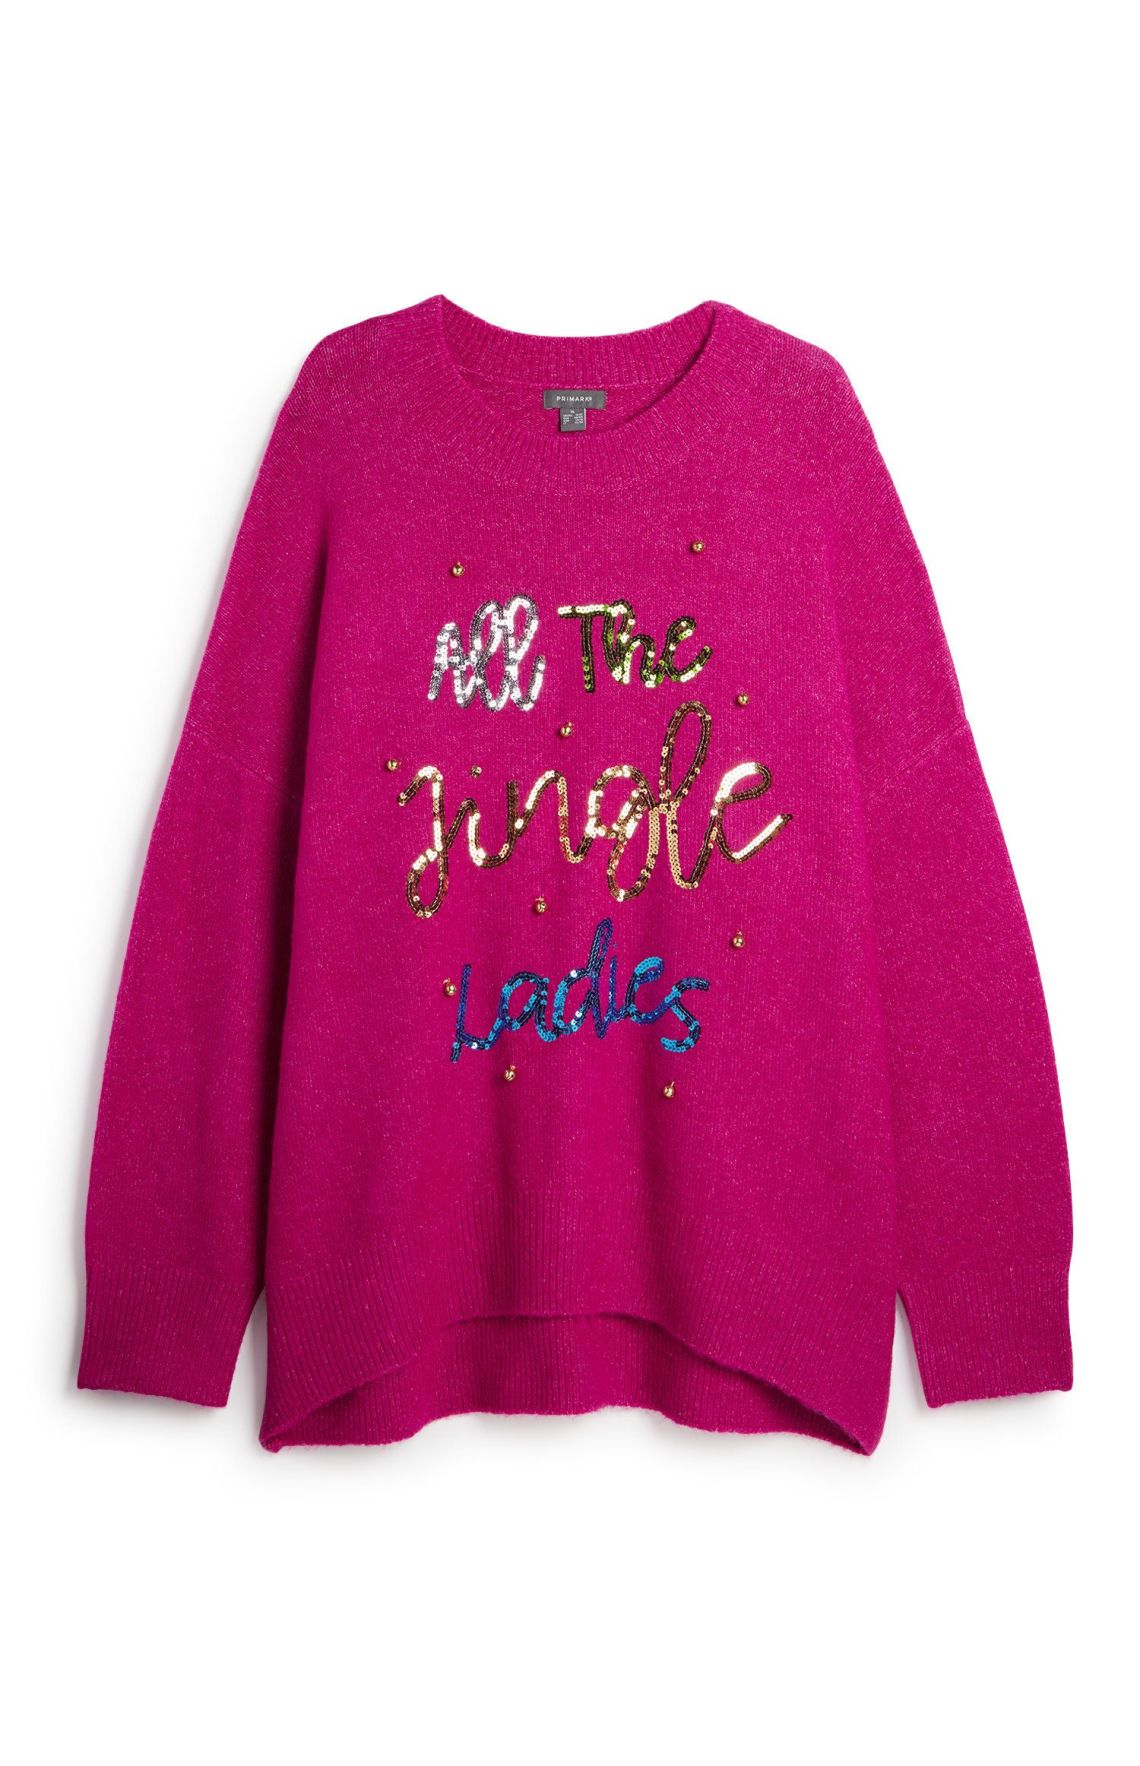 Punny, pink and positive - what more could a single lady want this Christmas?Primark, £12, available in stores now